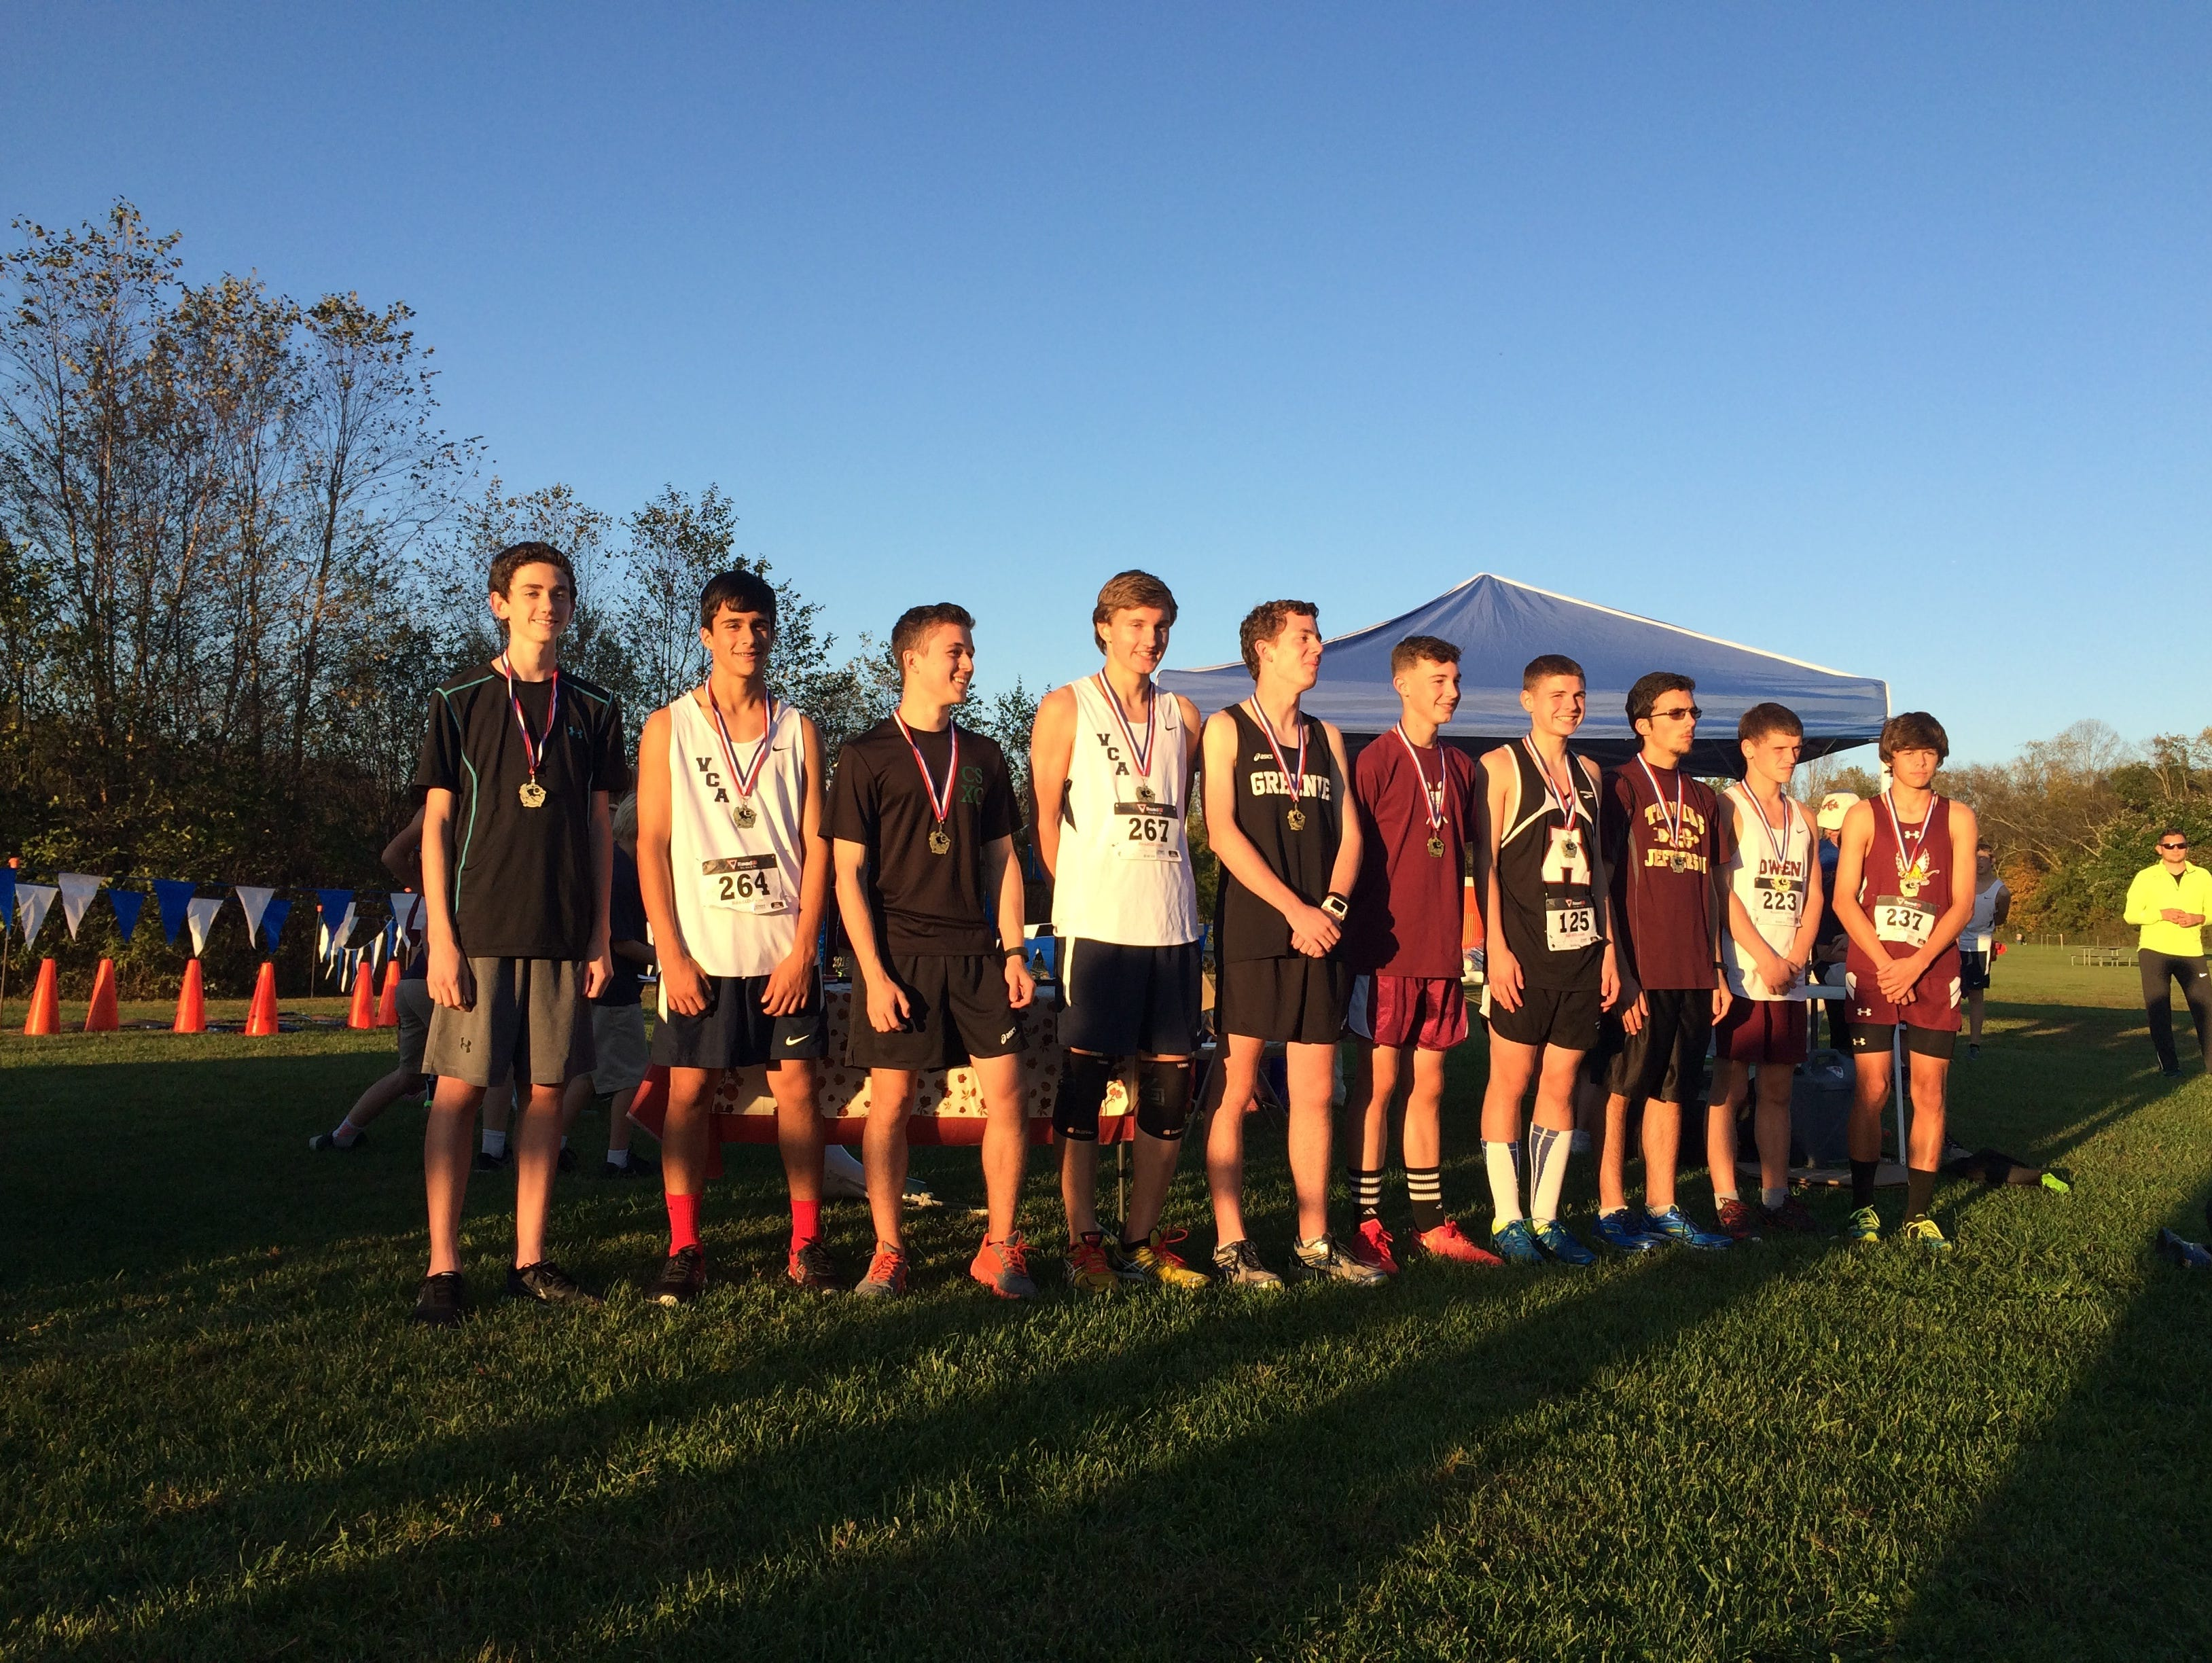 The top-10 boys runners at Thursday's Veritas Christian Academy Invitational cross country meet in Fletcher.